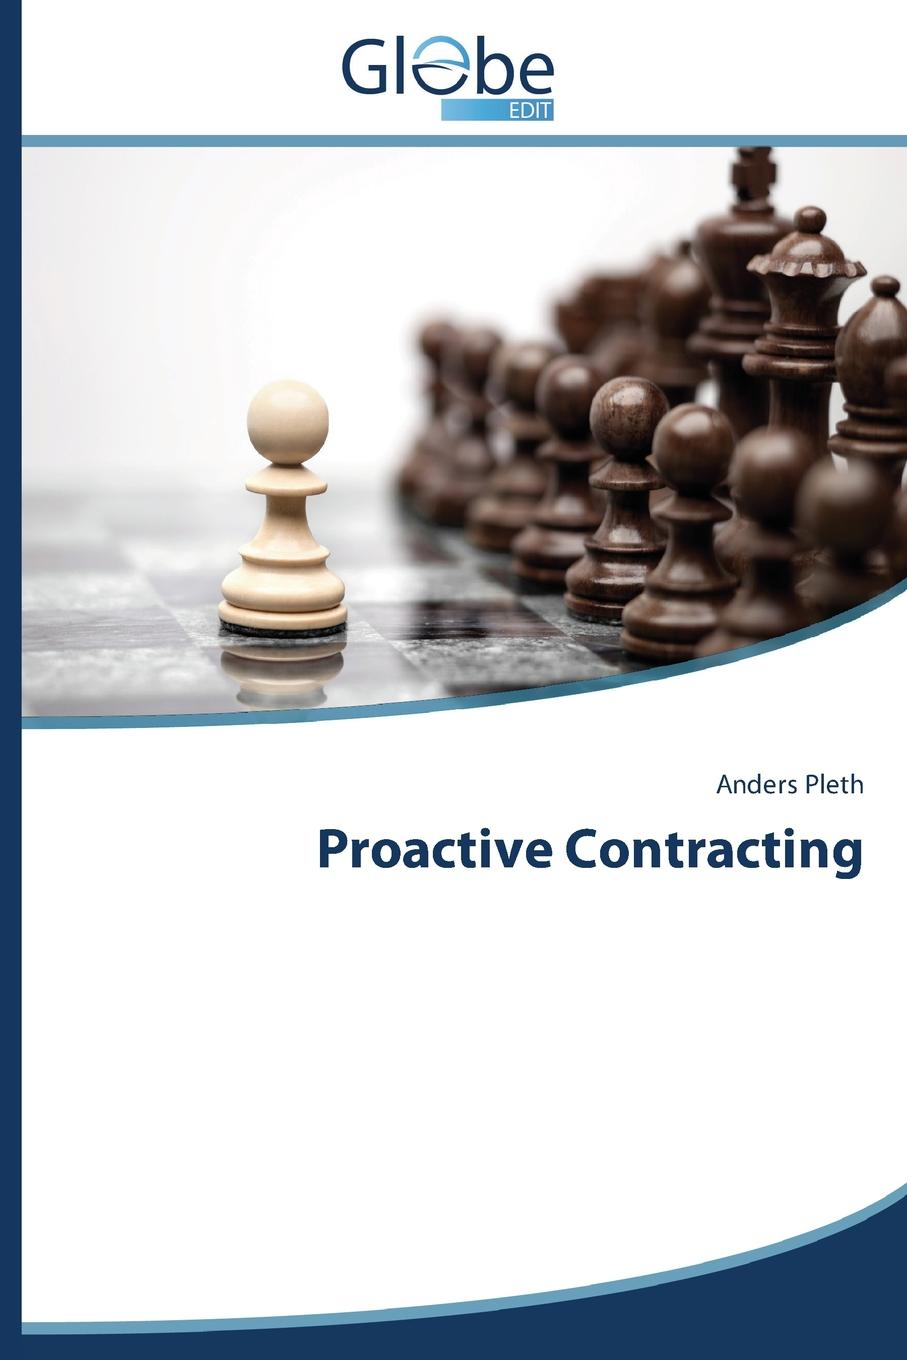 Pleth Anders Proactive Contracting the cost of contracting out